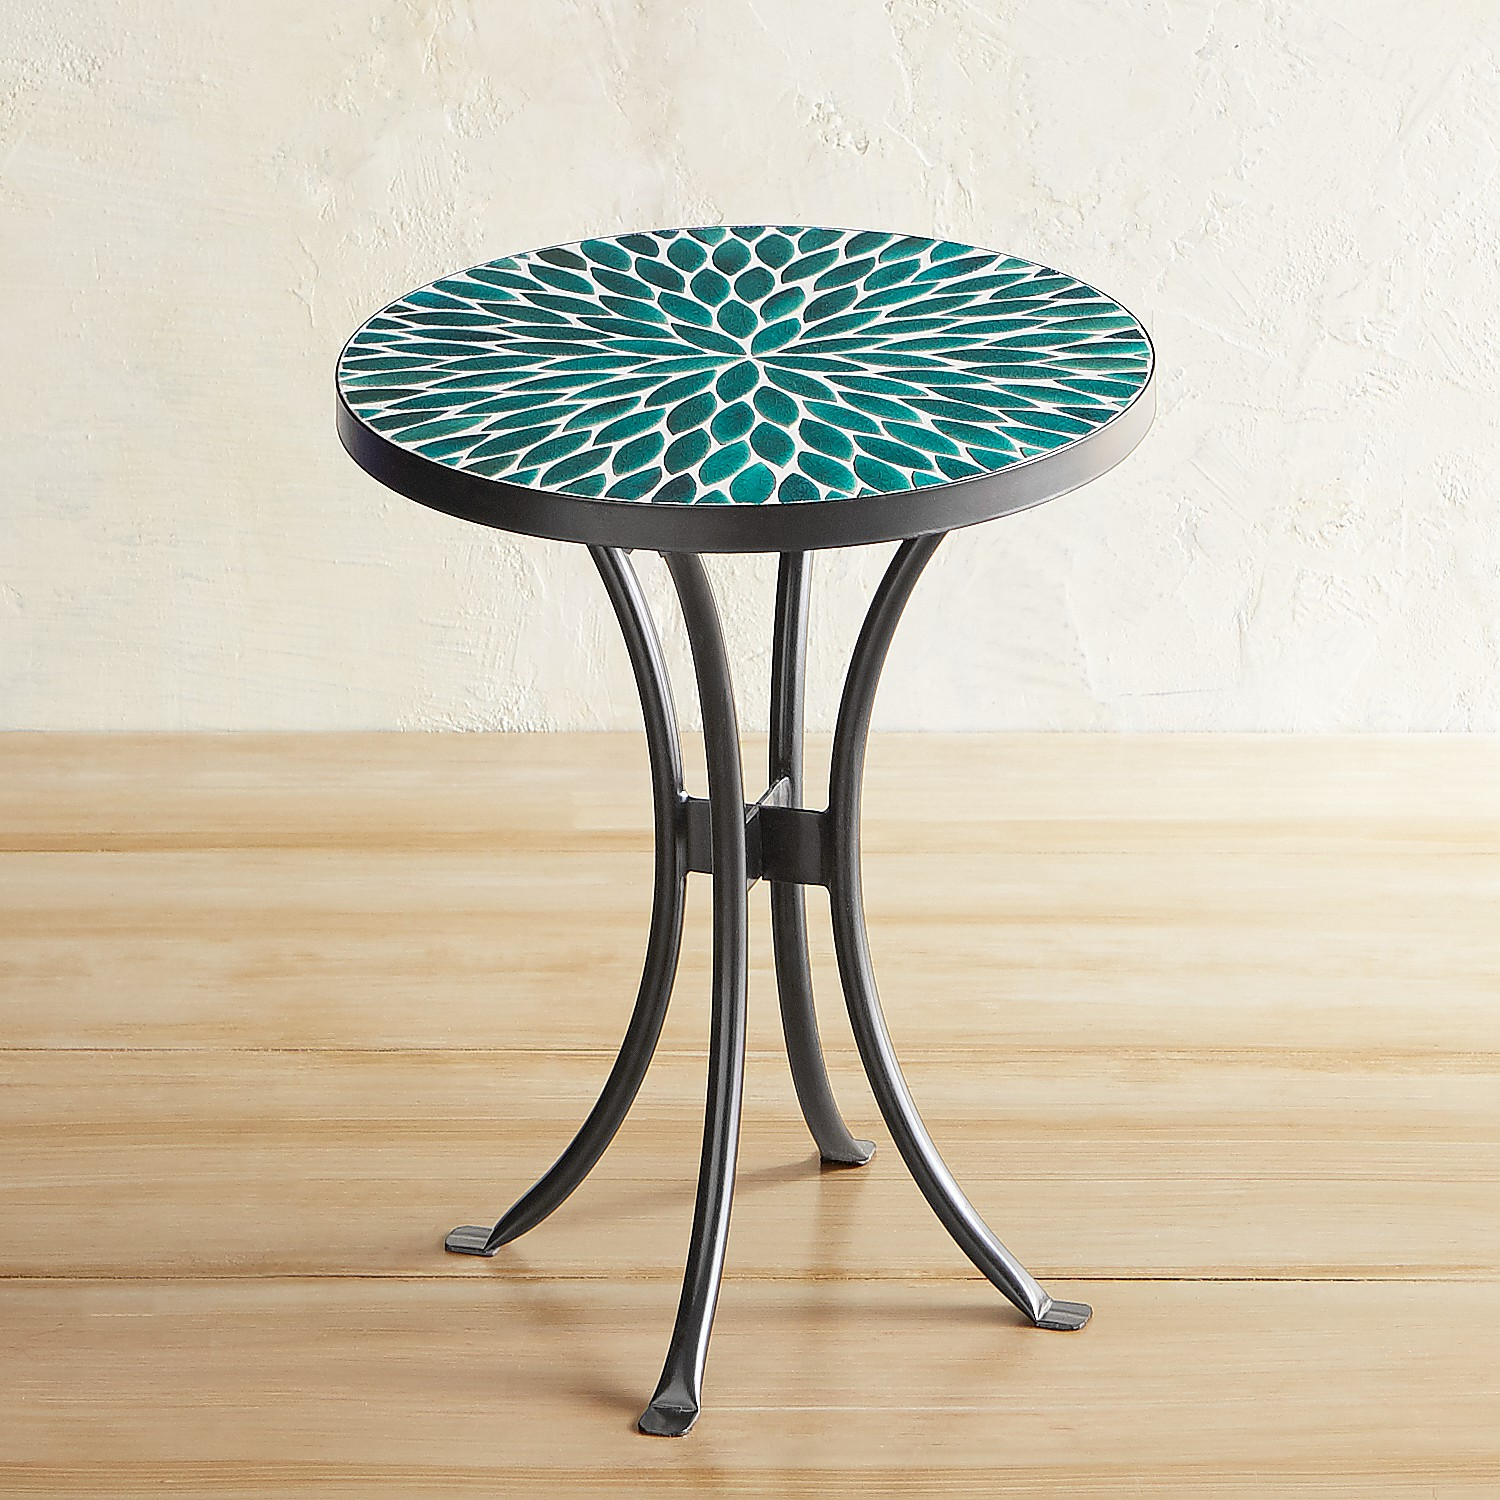 Jules Green Pebbles Mosaic Accent Table